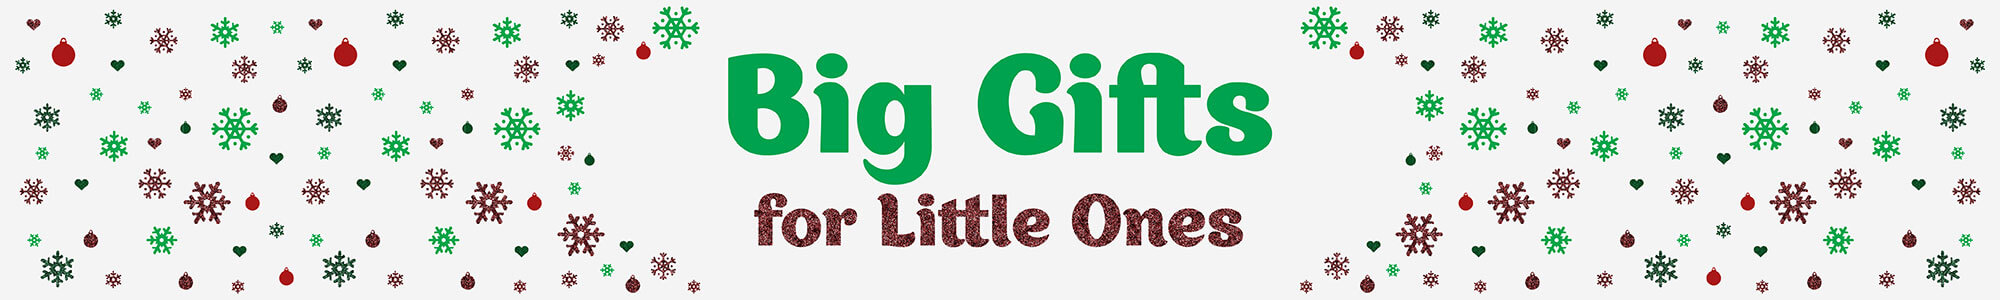 Big-Gifts-for-Little-Ones-Website-Brand-Page-2000x300px.jpg